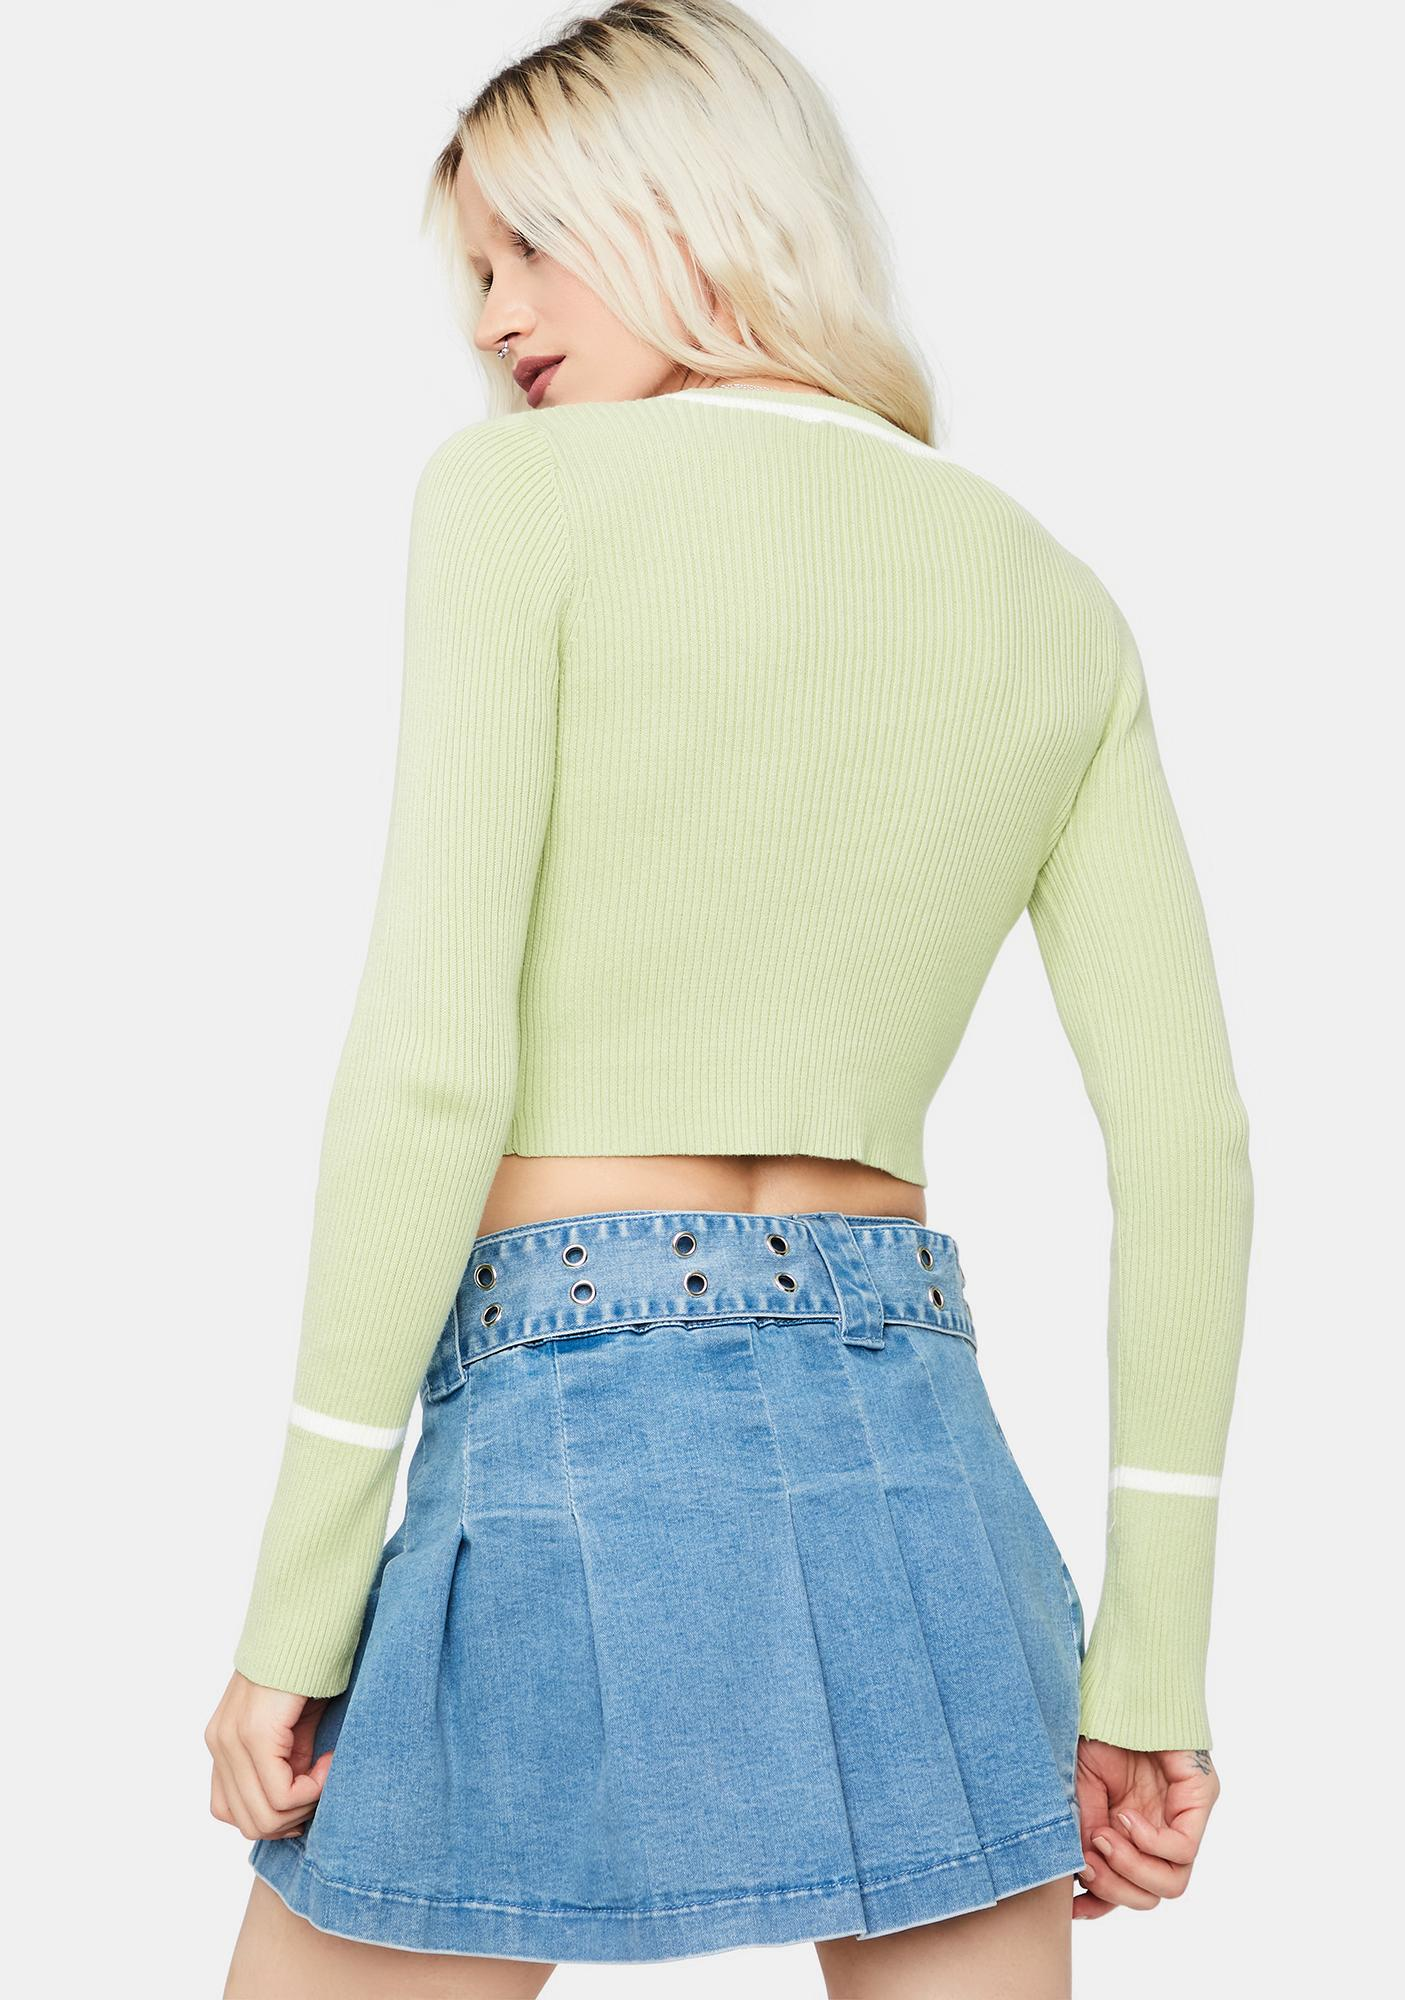 Kiwi Pardon Me Ribbed Long Sleeve Top